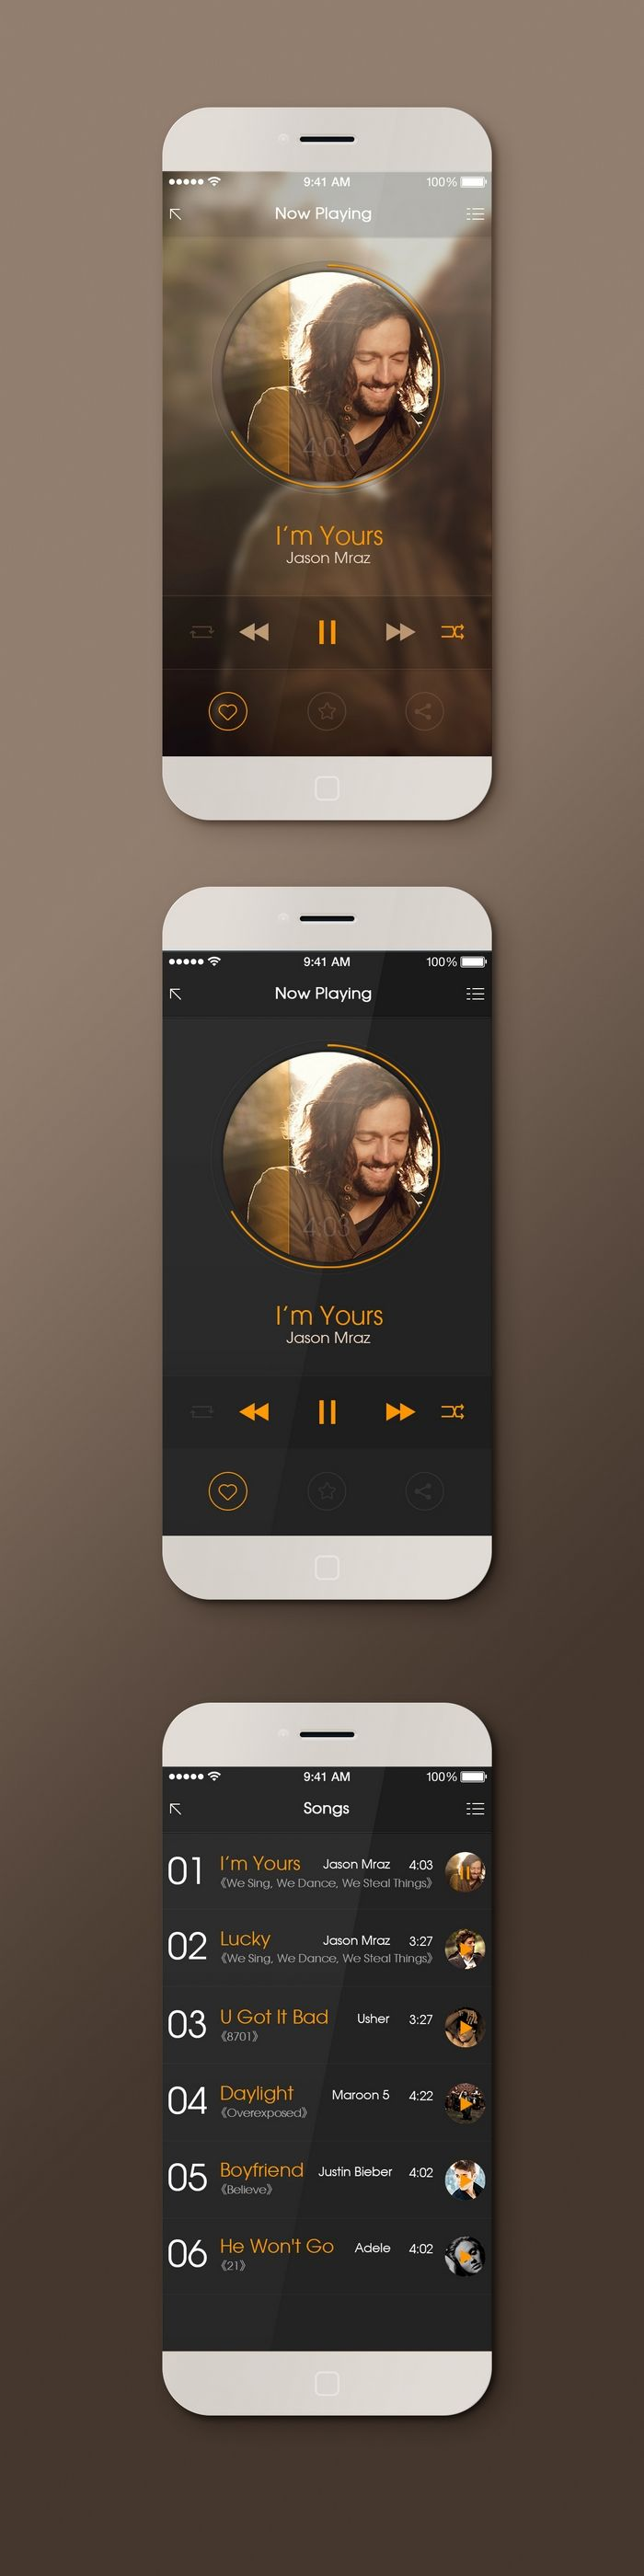 Mobile device music playing app concept #UI